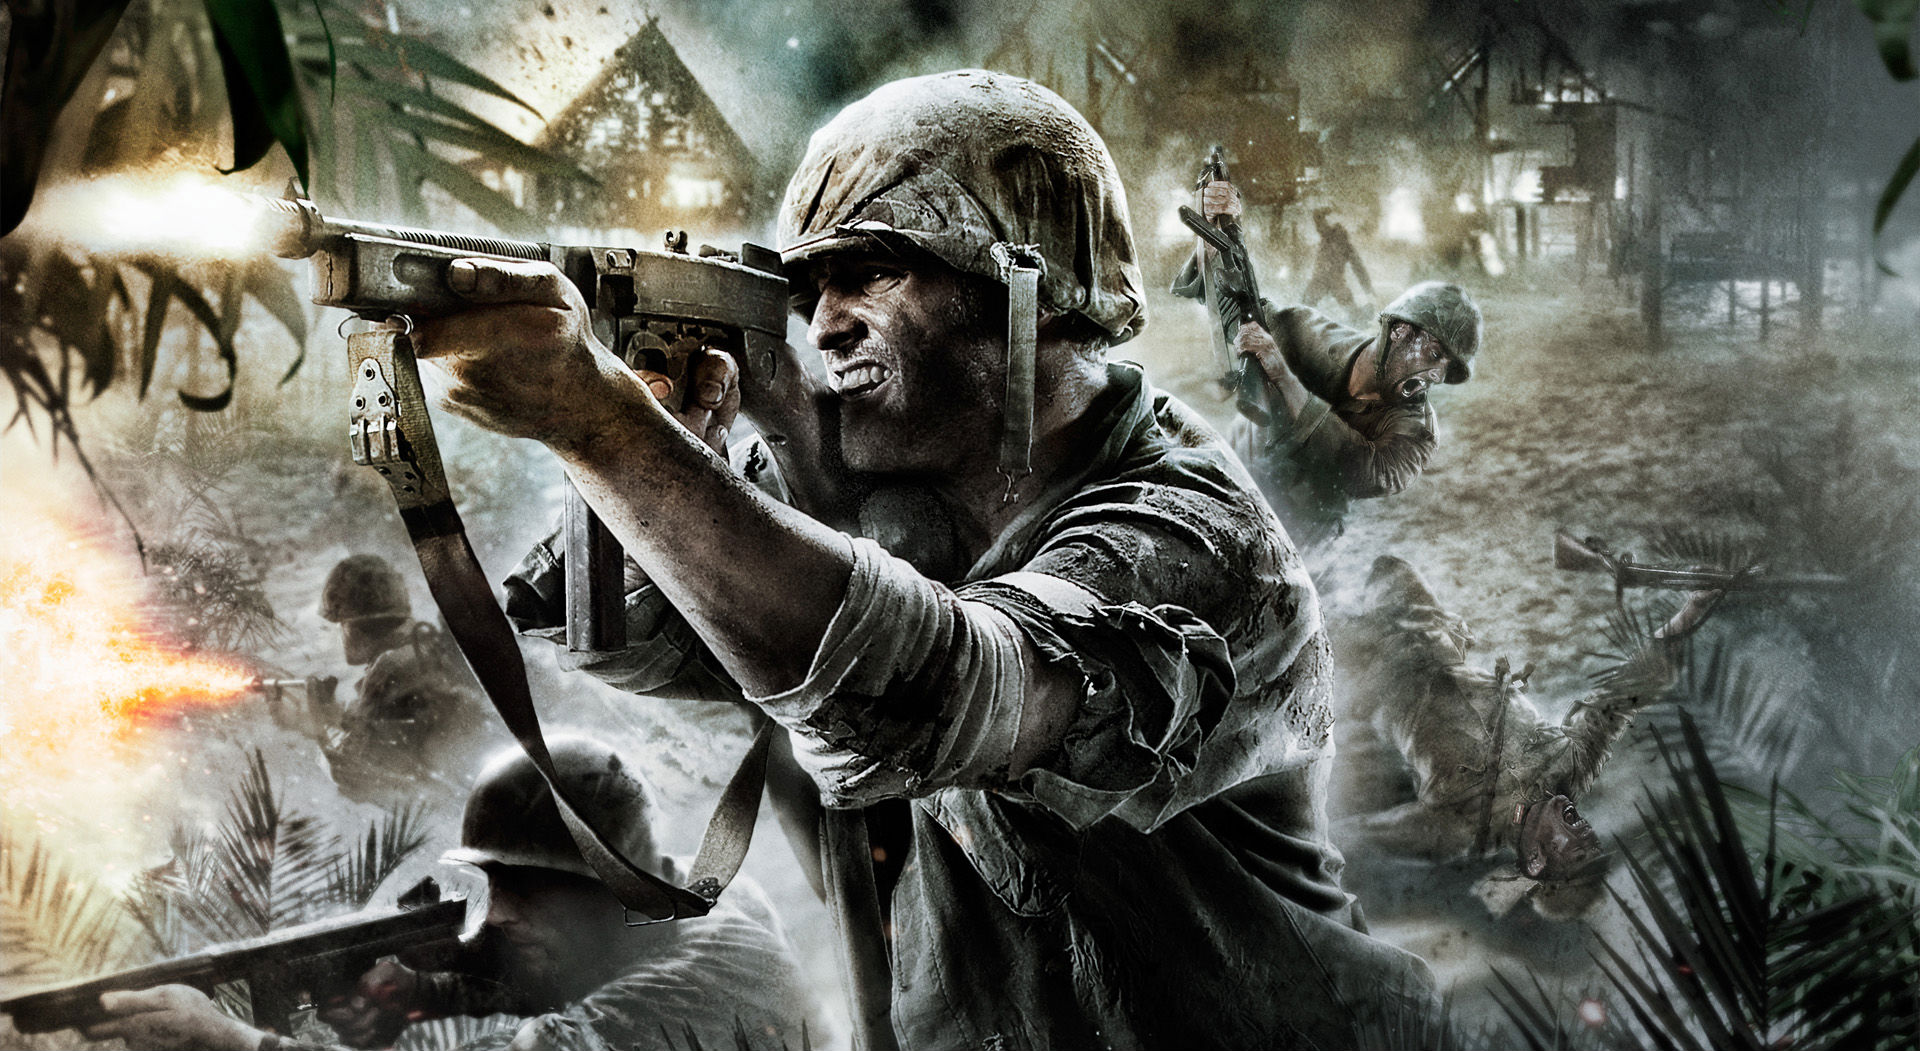 Call Of Duty Ww2 Zombies Wallpaper: Call Of Duty WWII HD Wallpapers